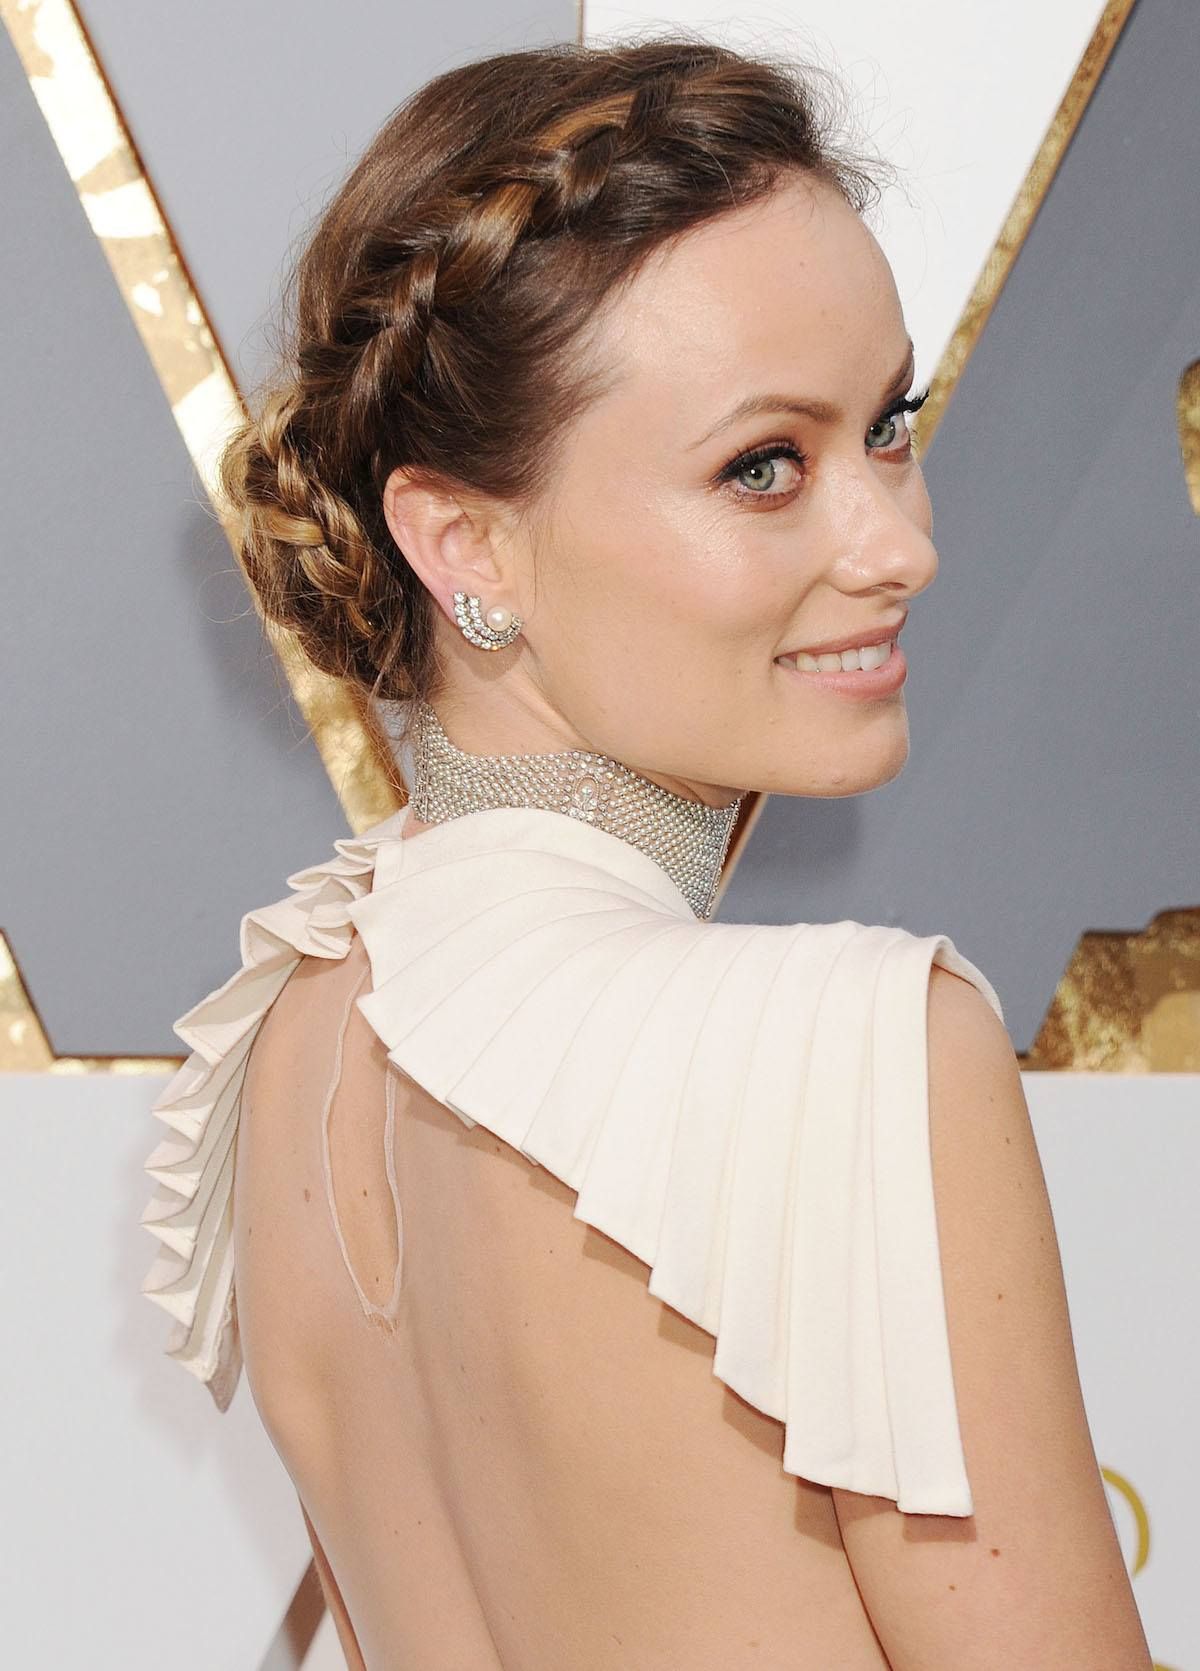 Gaya halo braid a la Olivia Wilde